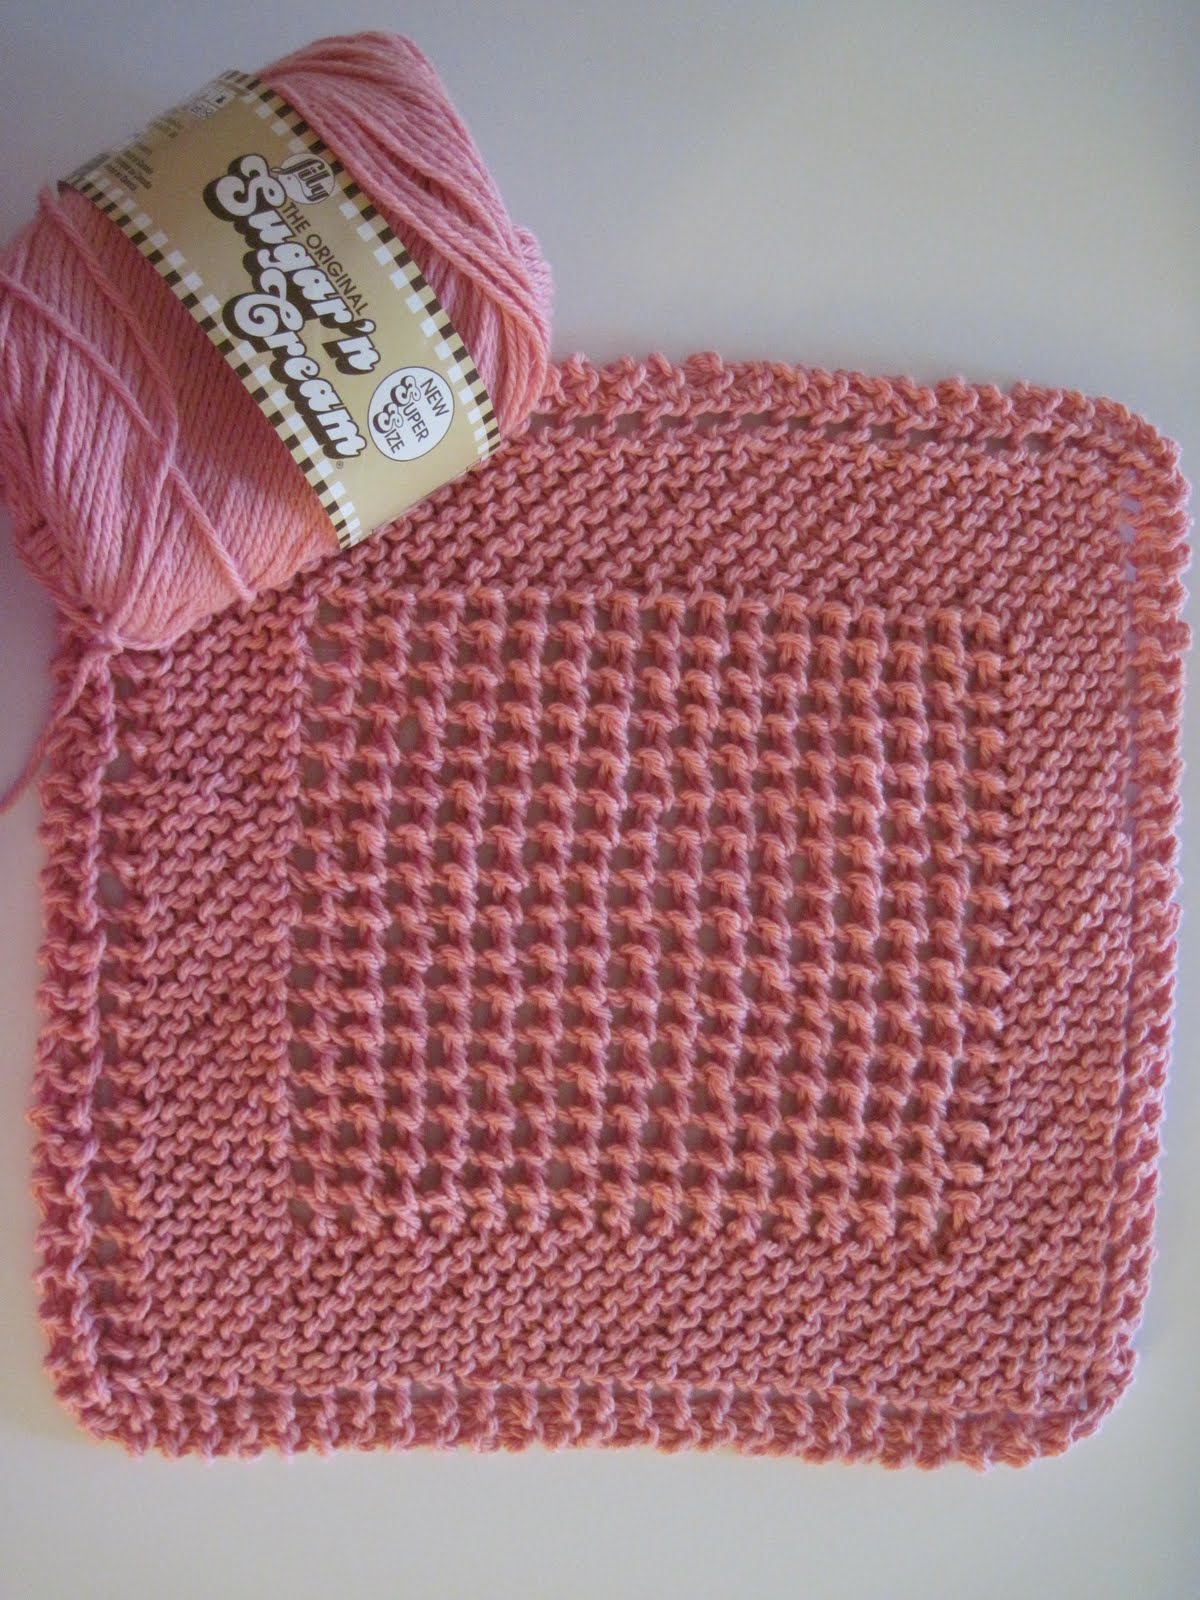 Knitted Dishcloth Patterns Diagonal : Passion Knit Girl: Just Keep Knitting